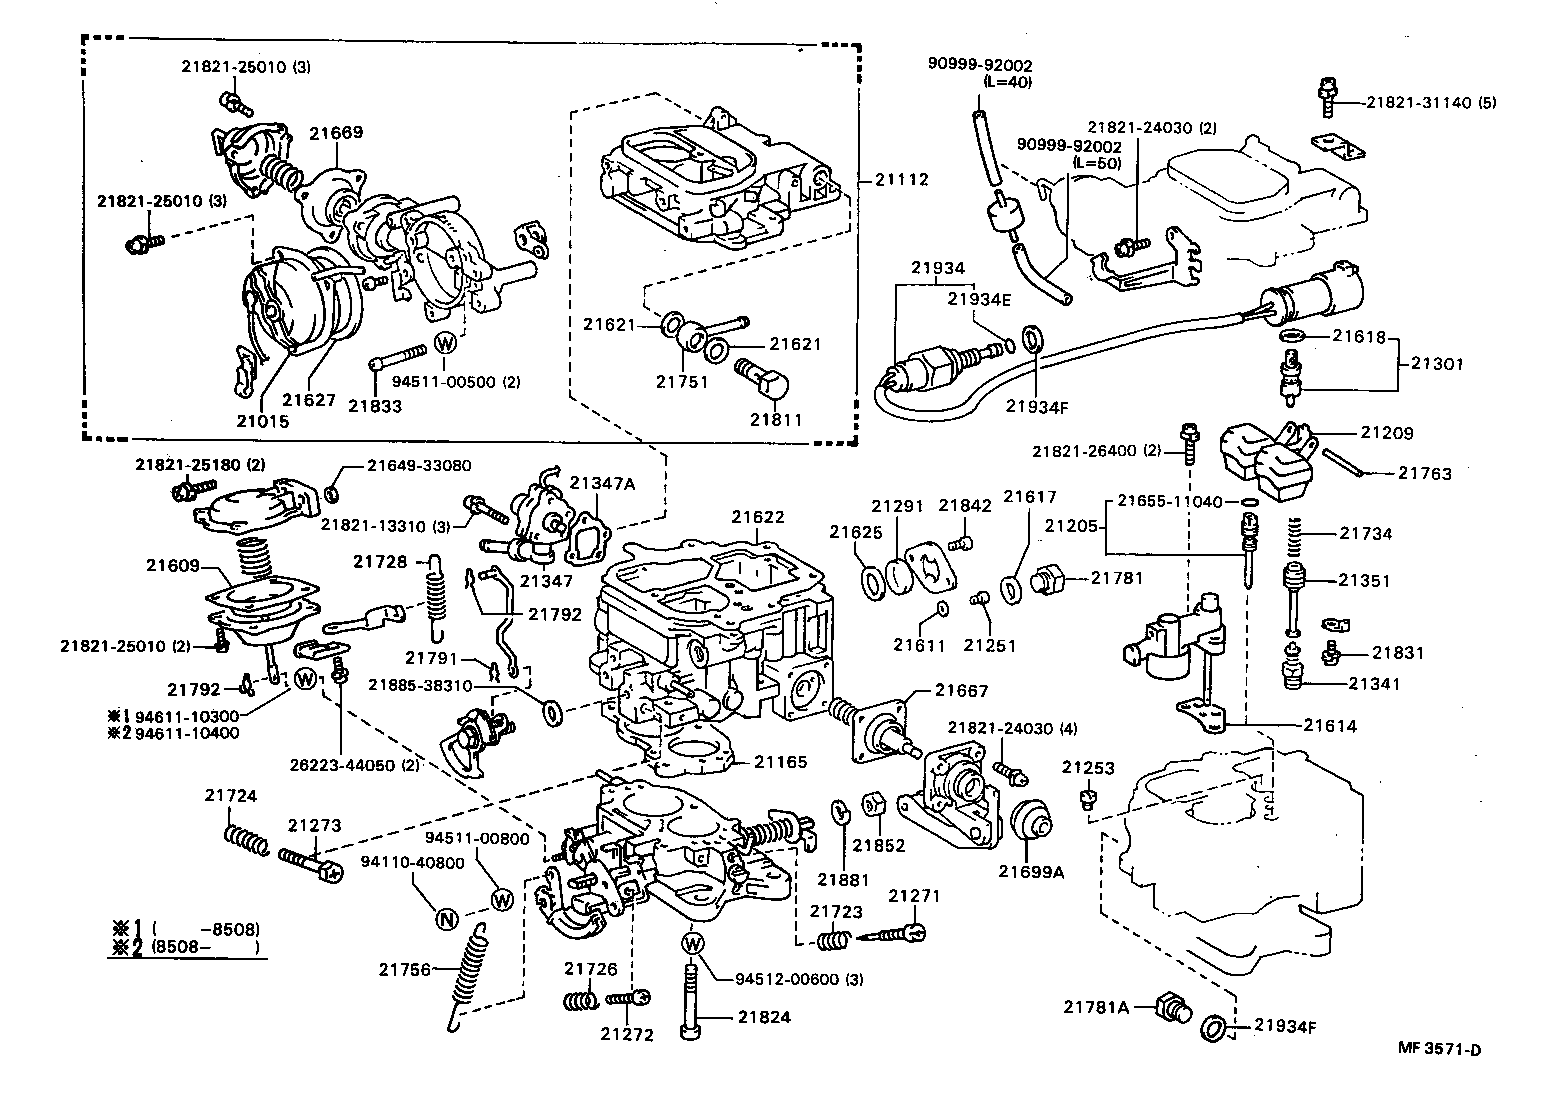 toyota engine parts diagram 2015 silverado tow mirror wiring 22r car tuning get free image